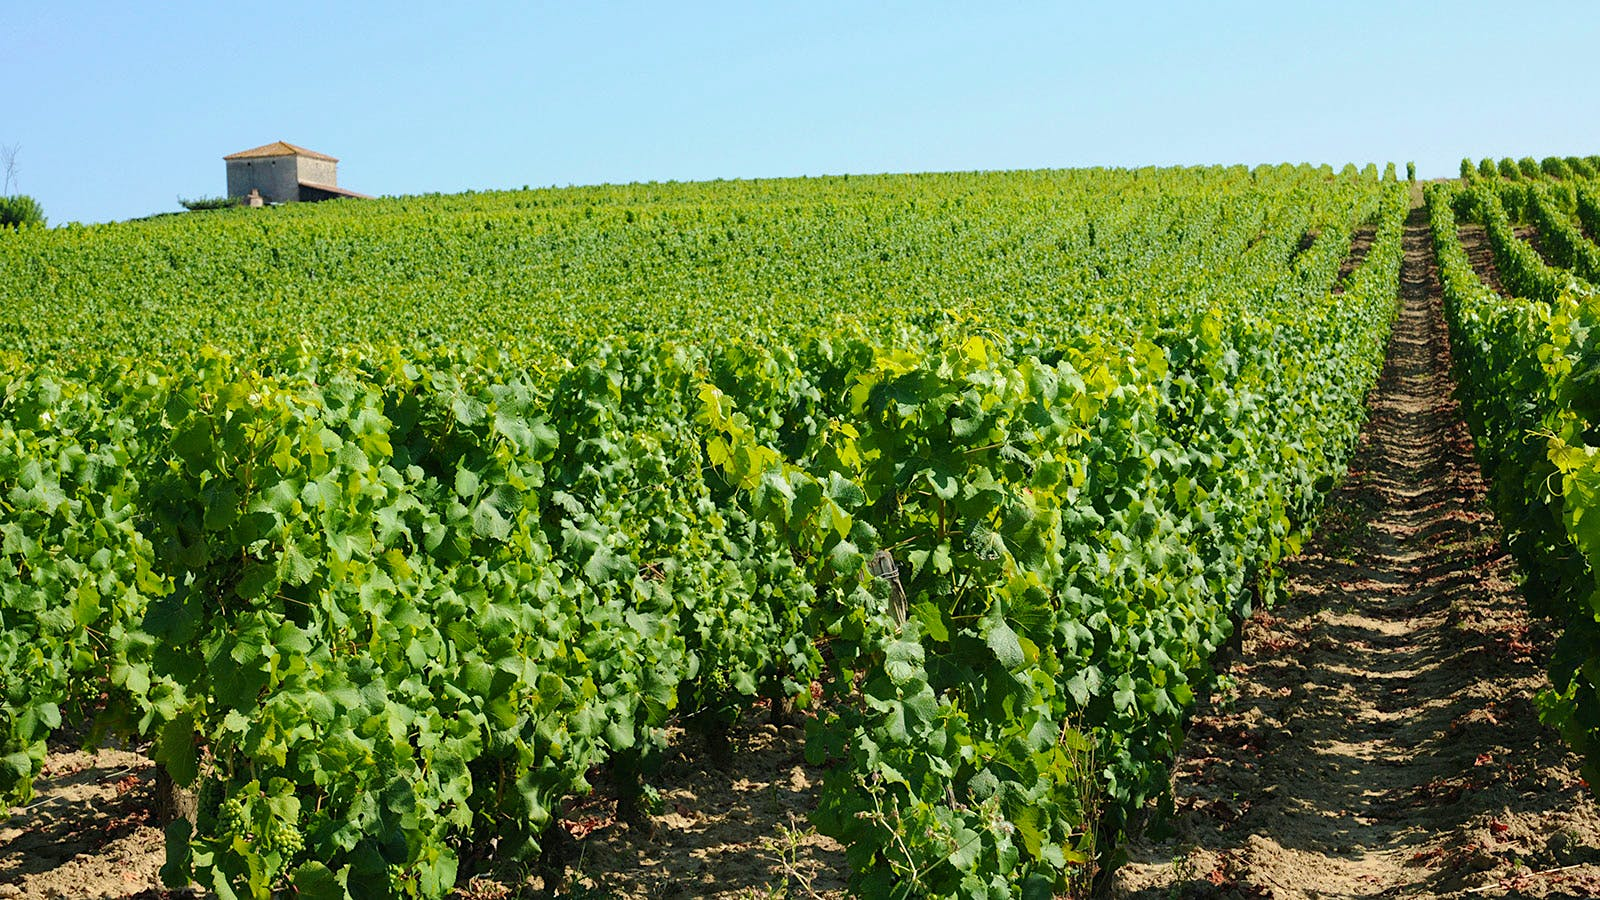 Battle Brewing in Sauternes Over Pesticide Use in Vineyards